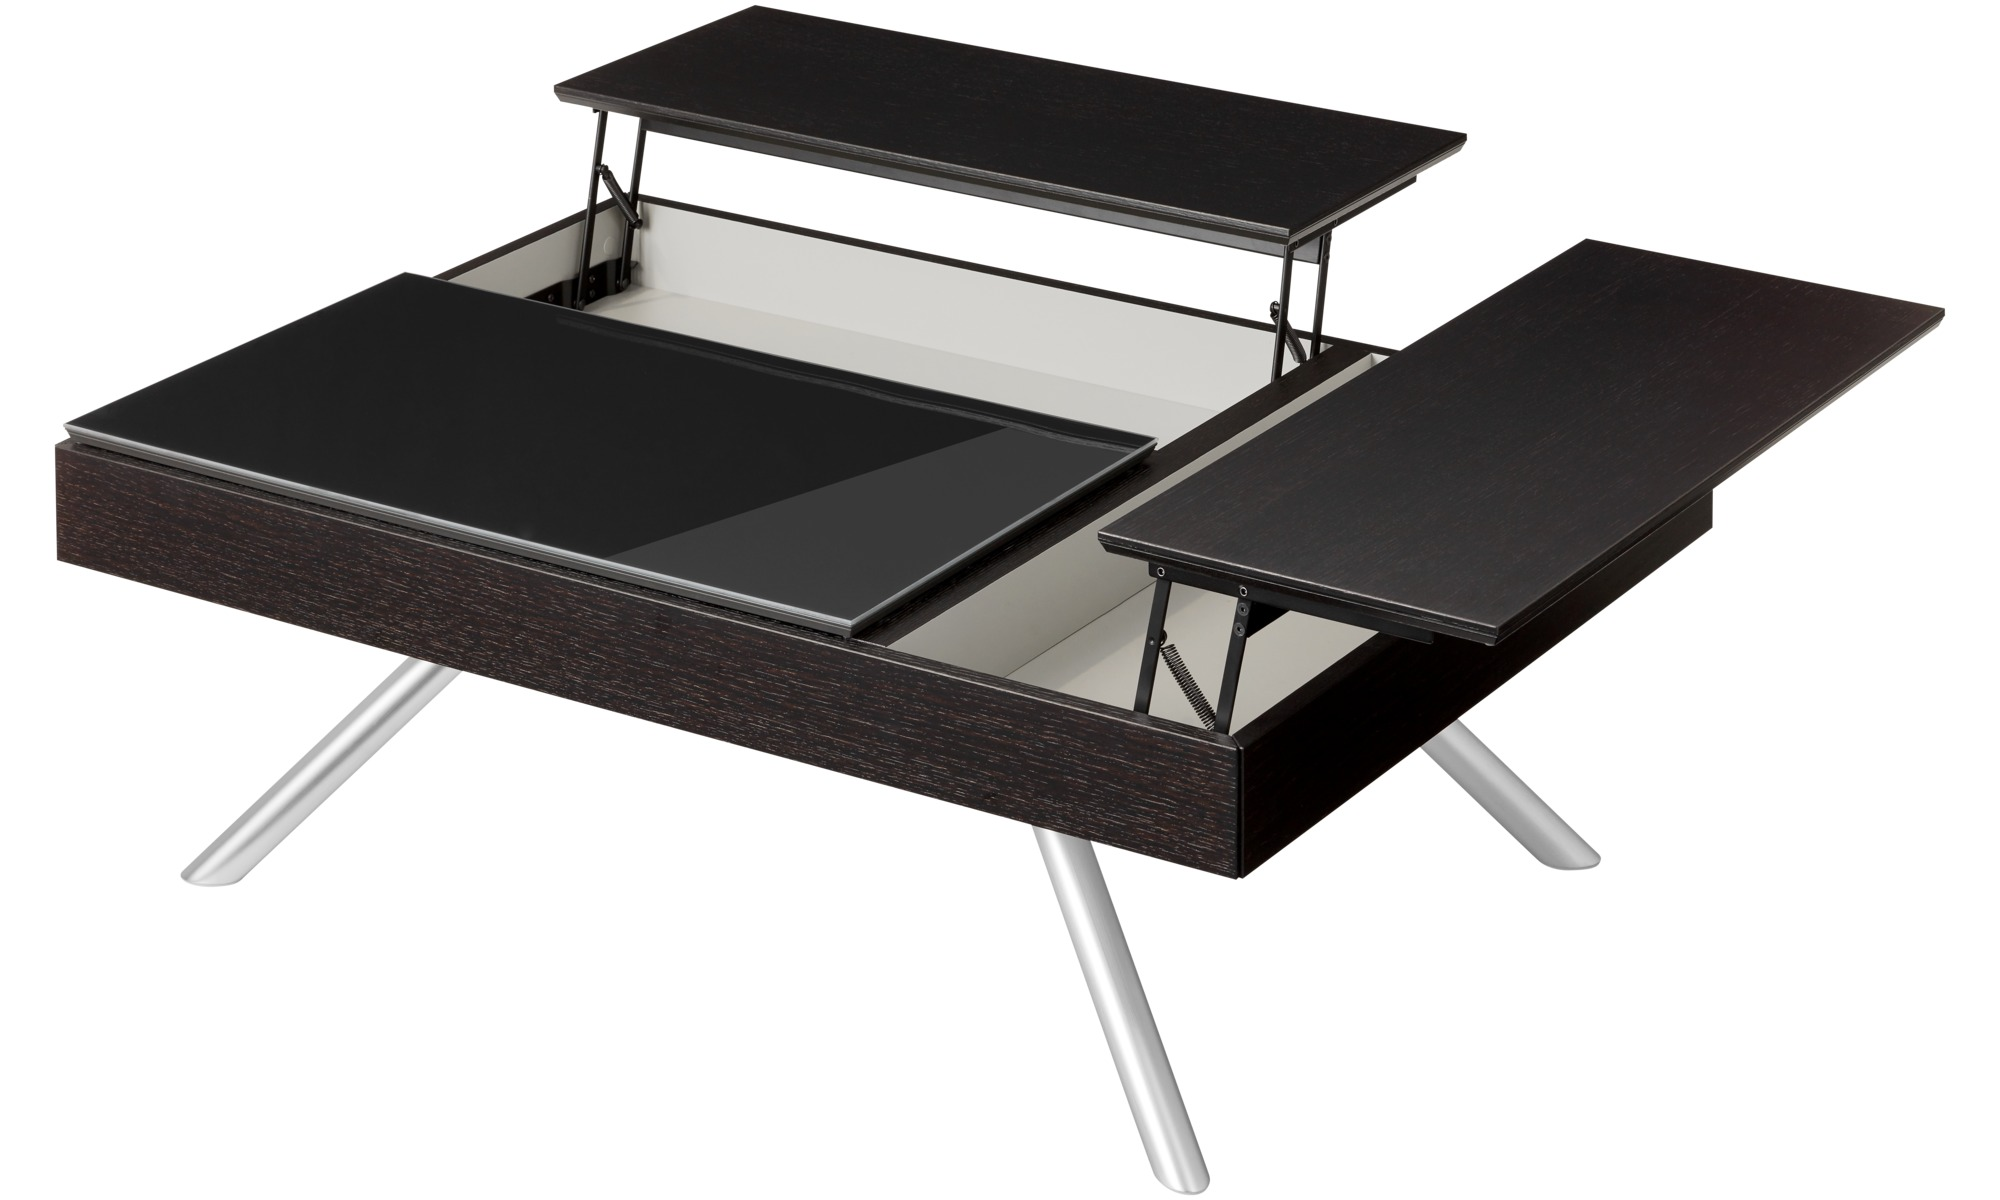 ehrf rchtige table basse bo concept id es de conception de table basse. Black Bedroom Furniture Sets. Home Design Ideas